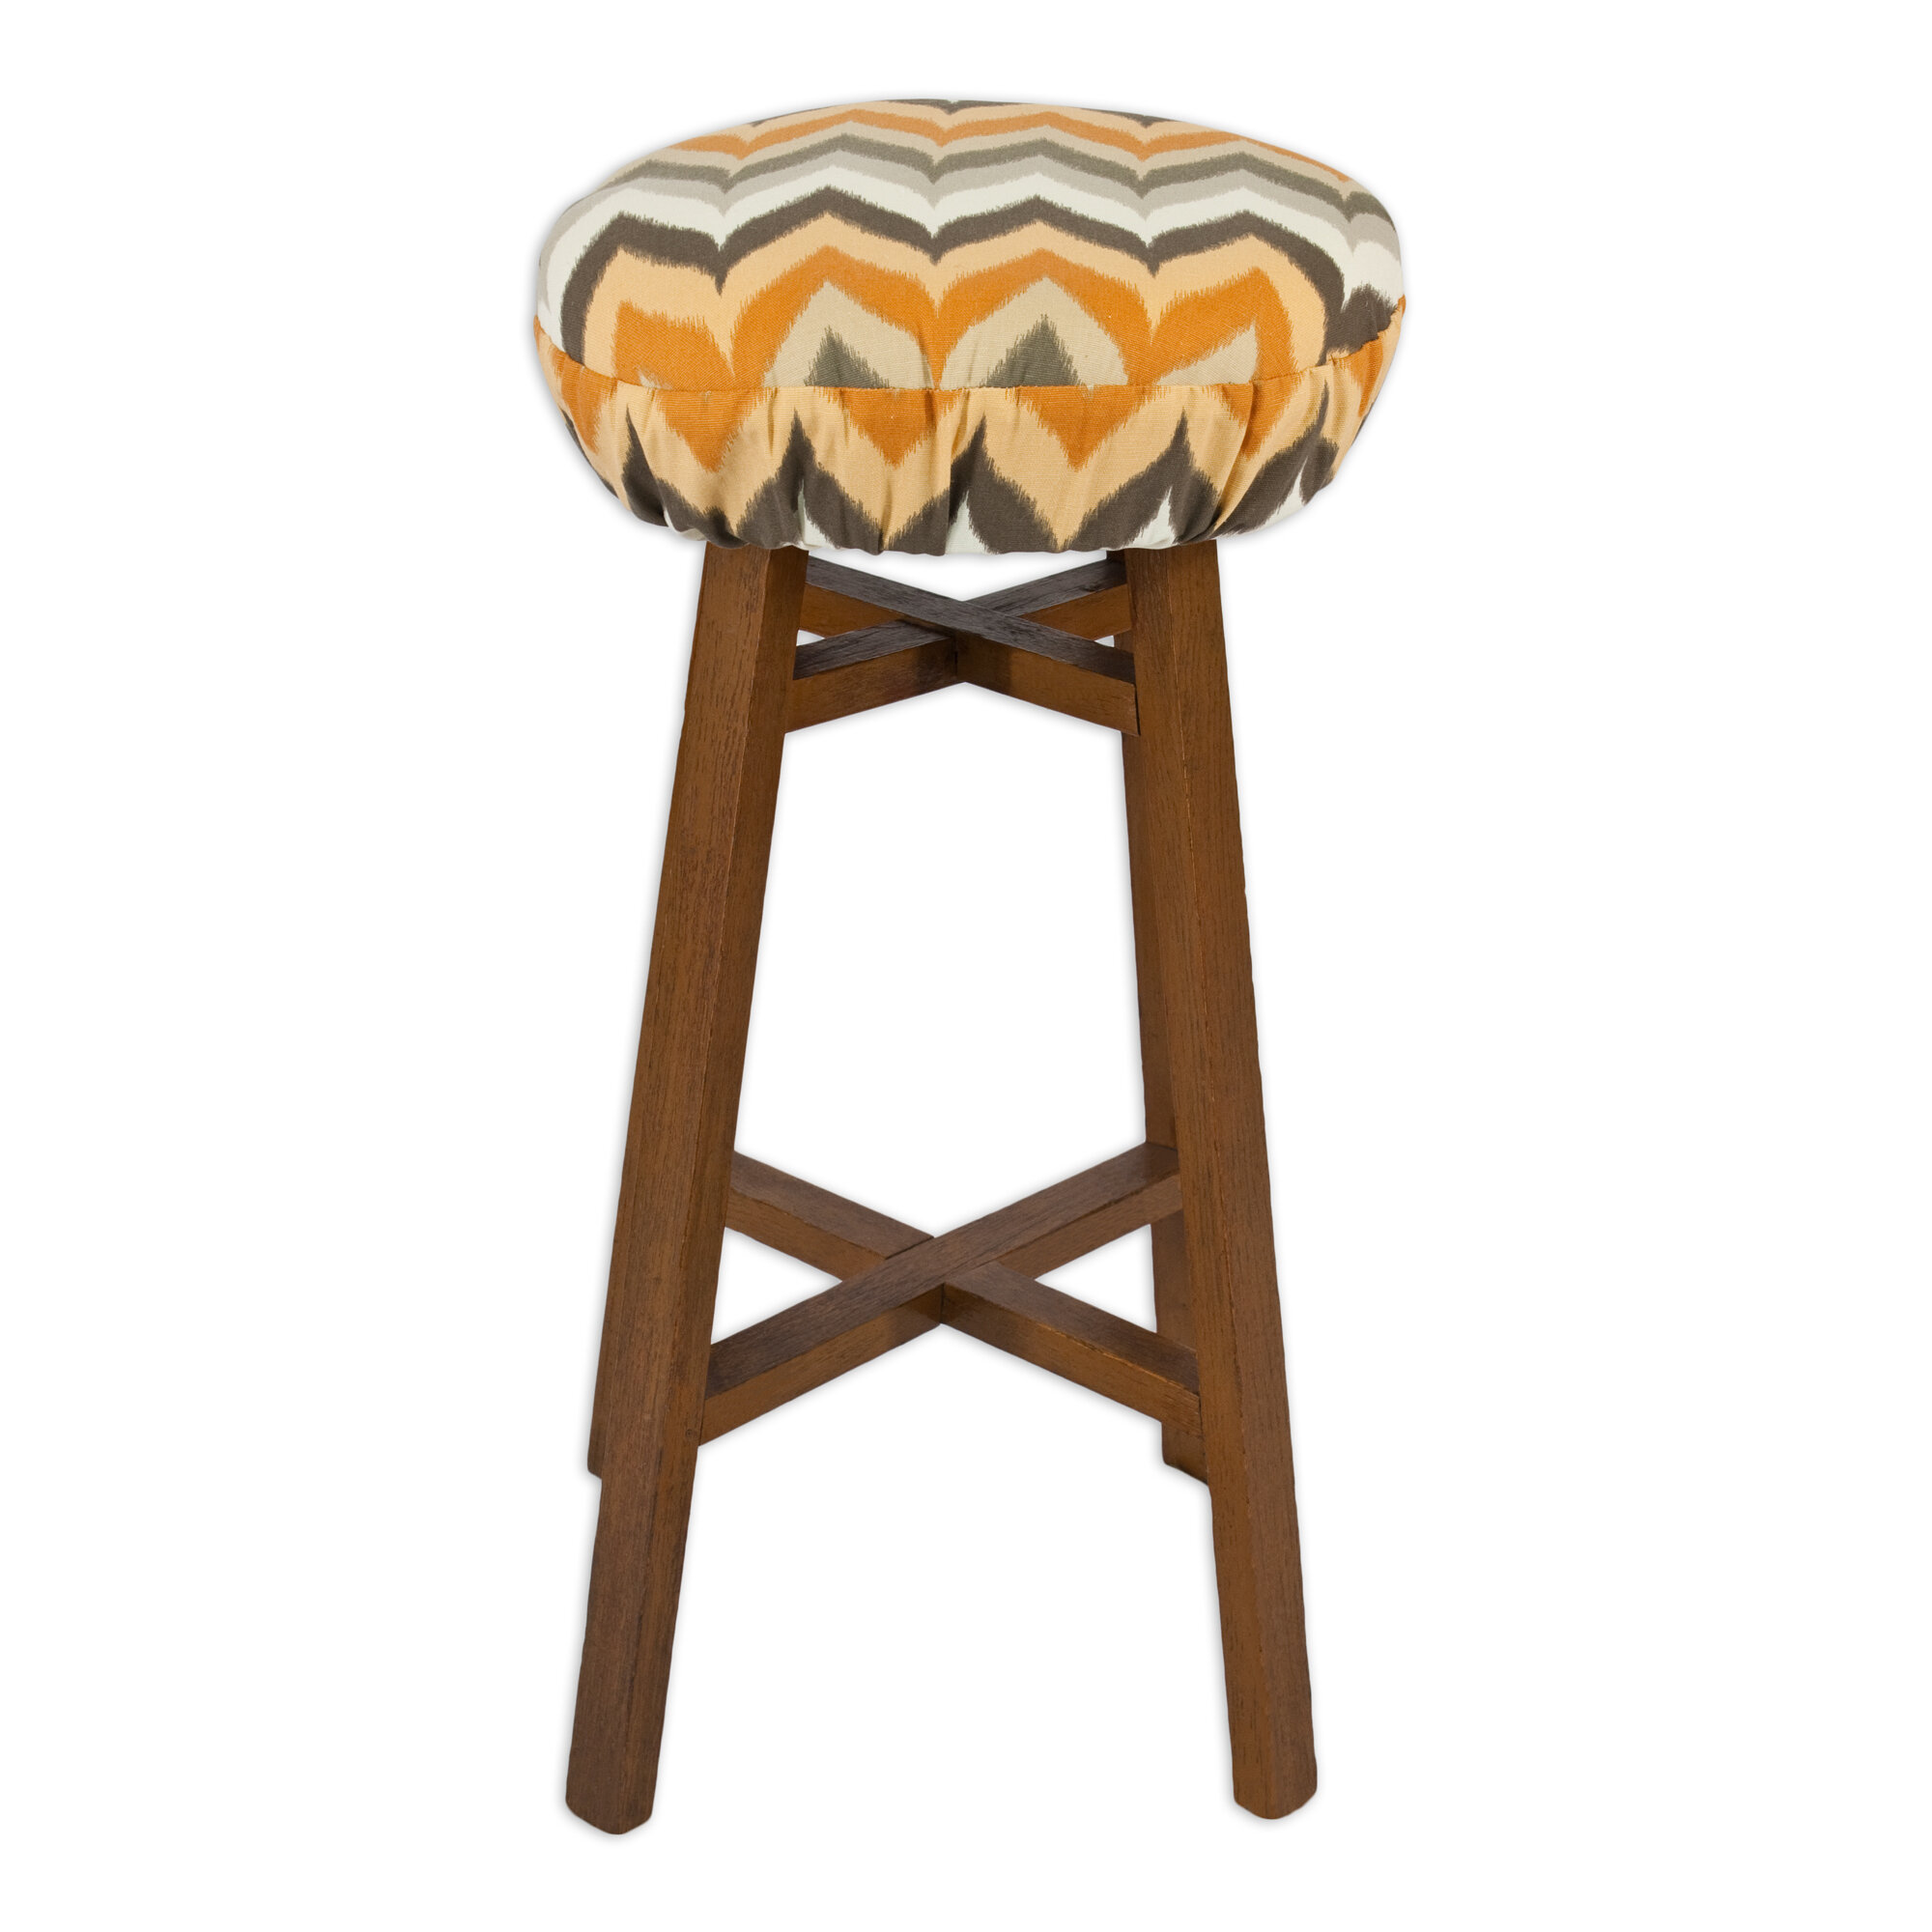 Brite Ideas Living Gant Paramount Round Foam Bar Stool Cushion : 1 from www.ebay.com size 2000 x 2000 jpeg 271kB